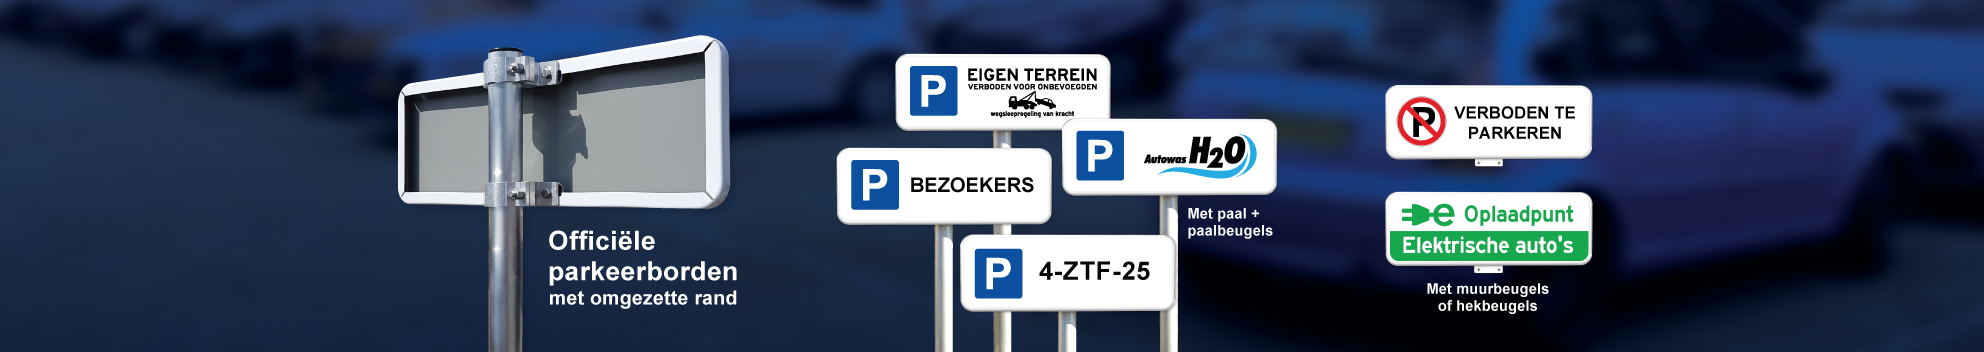 parkeerbord-banner-2020